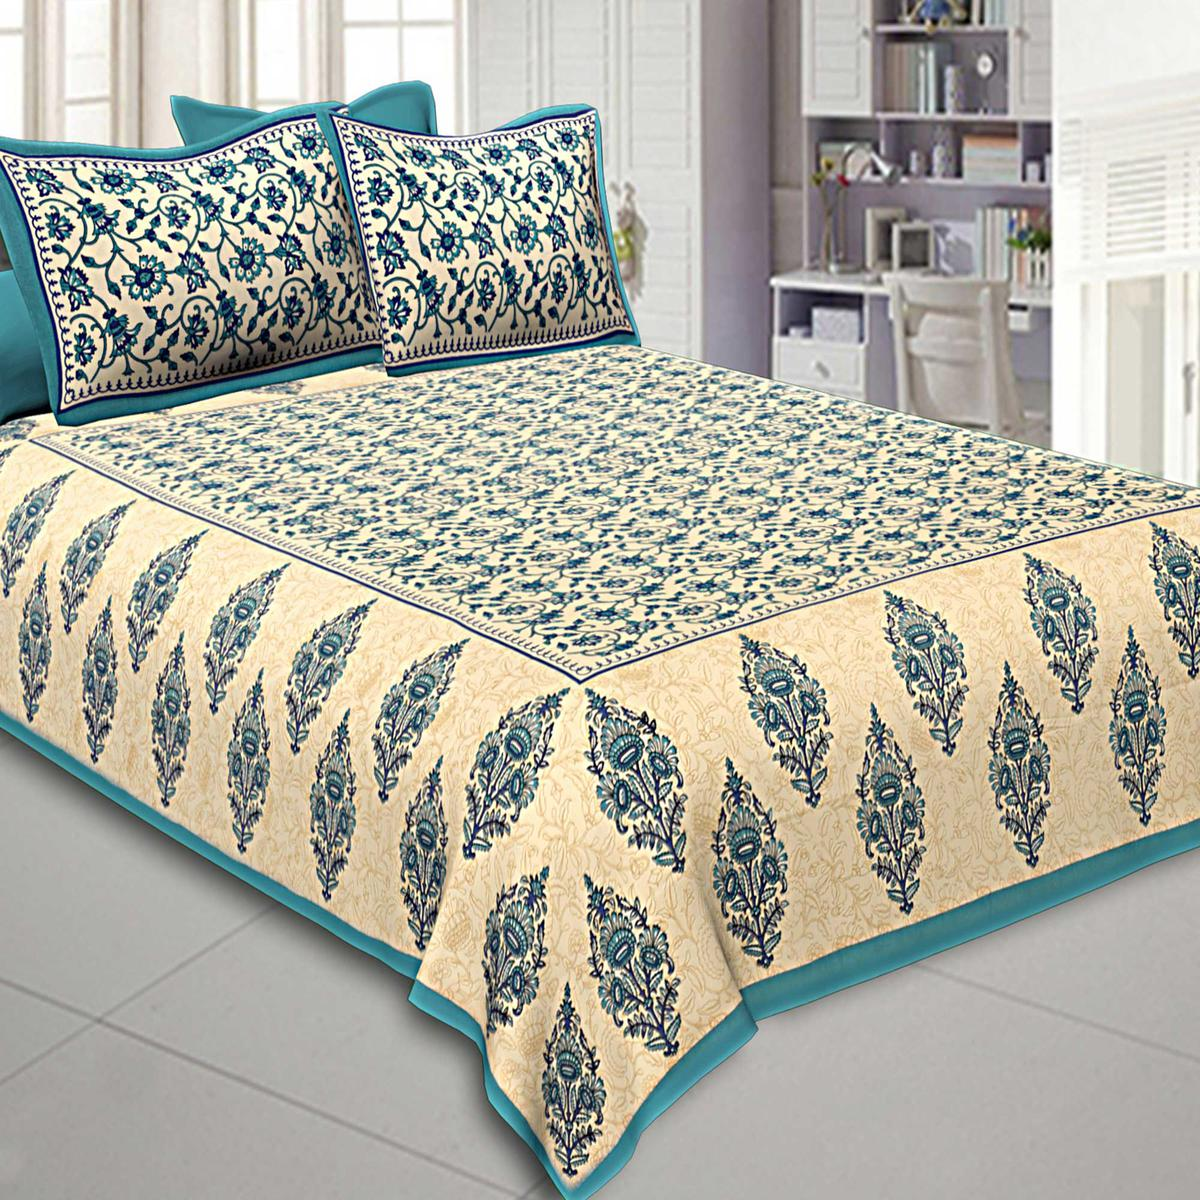 Sea Green Colored Border Tropical Keri Design Cotton Double Bed Sheet With 2 Pillow Cover